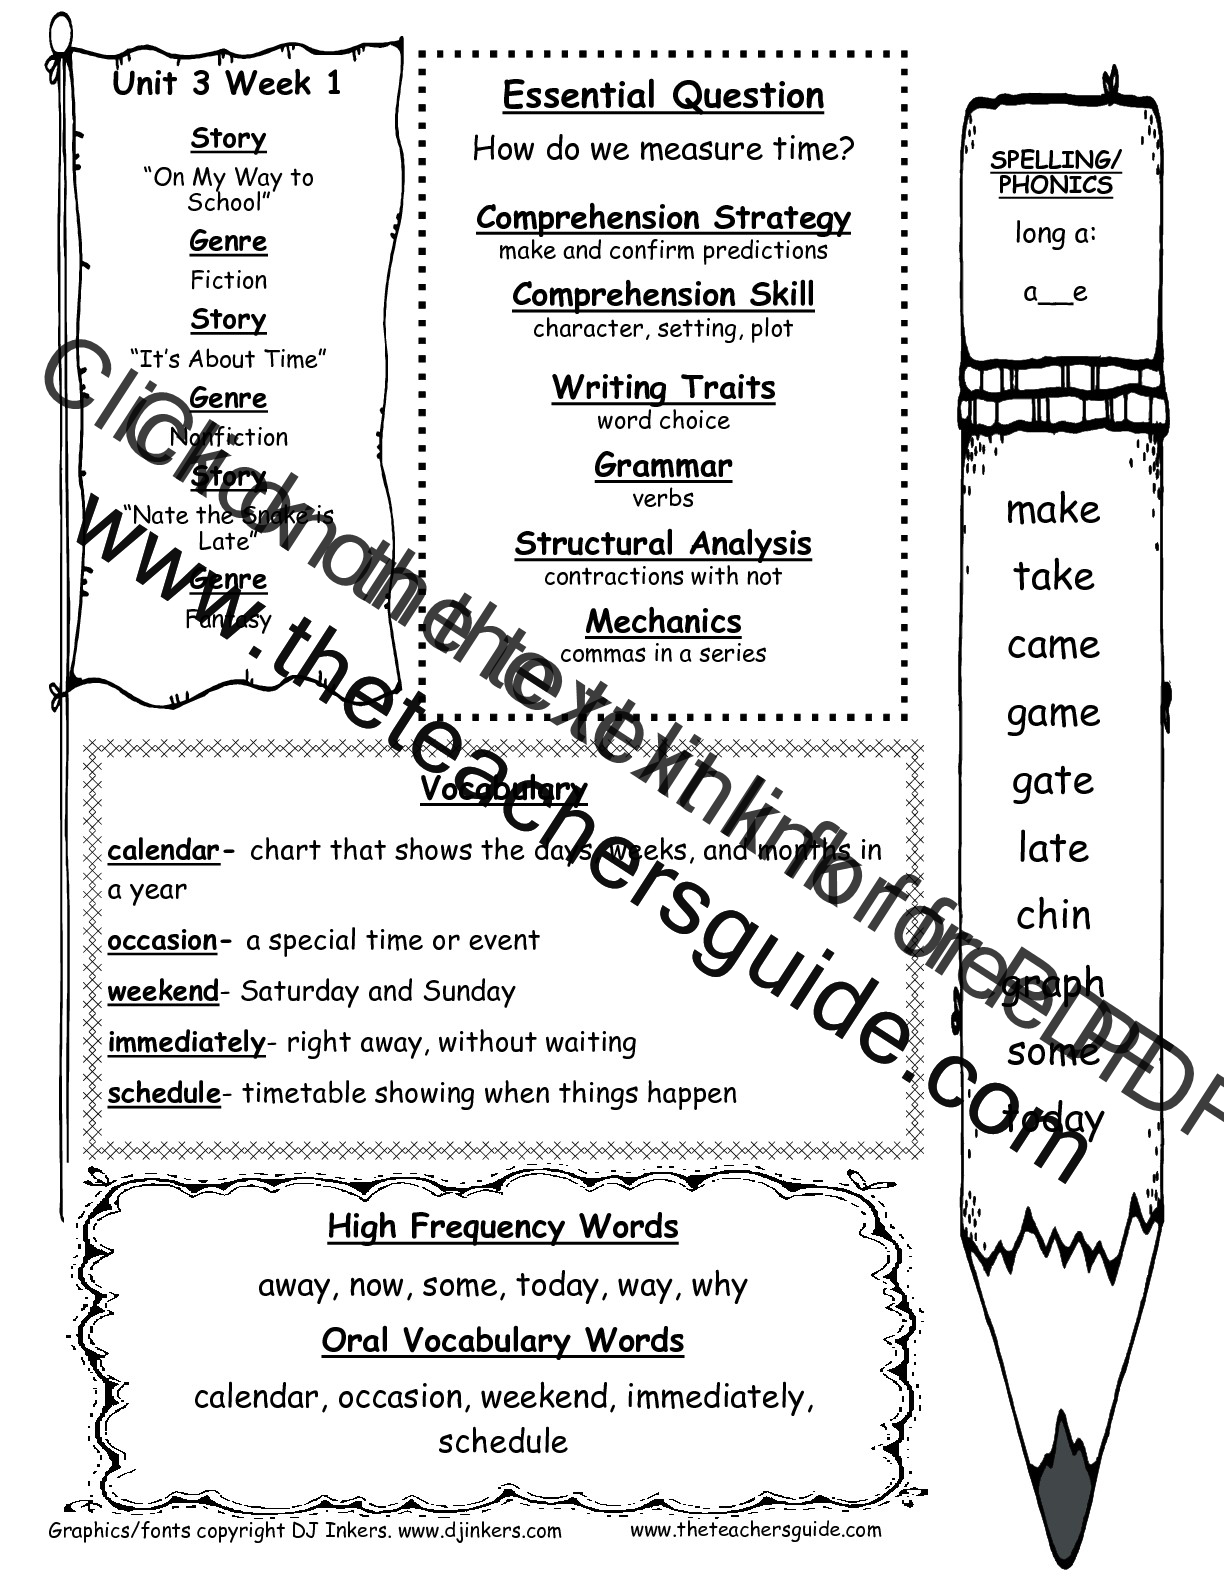 worksheet 1st Grade Vocabulary Worksheets vocabulary worksheets for 1st grade free library voc bul ry w ksheets gr de libr ry